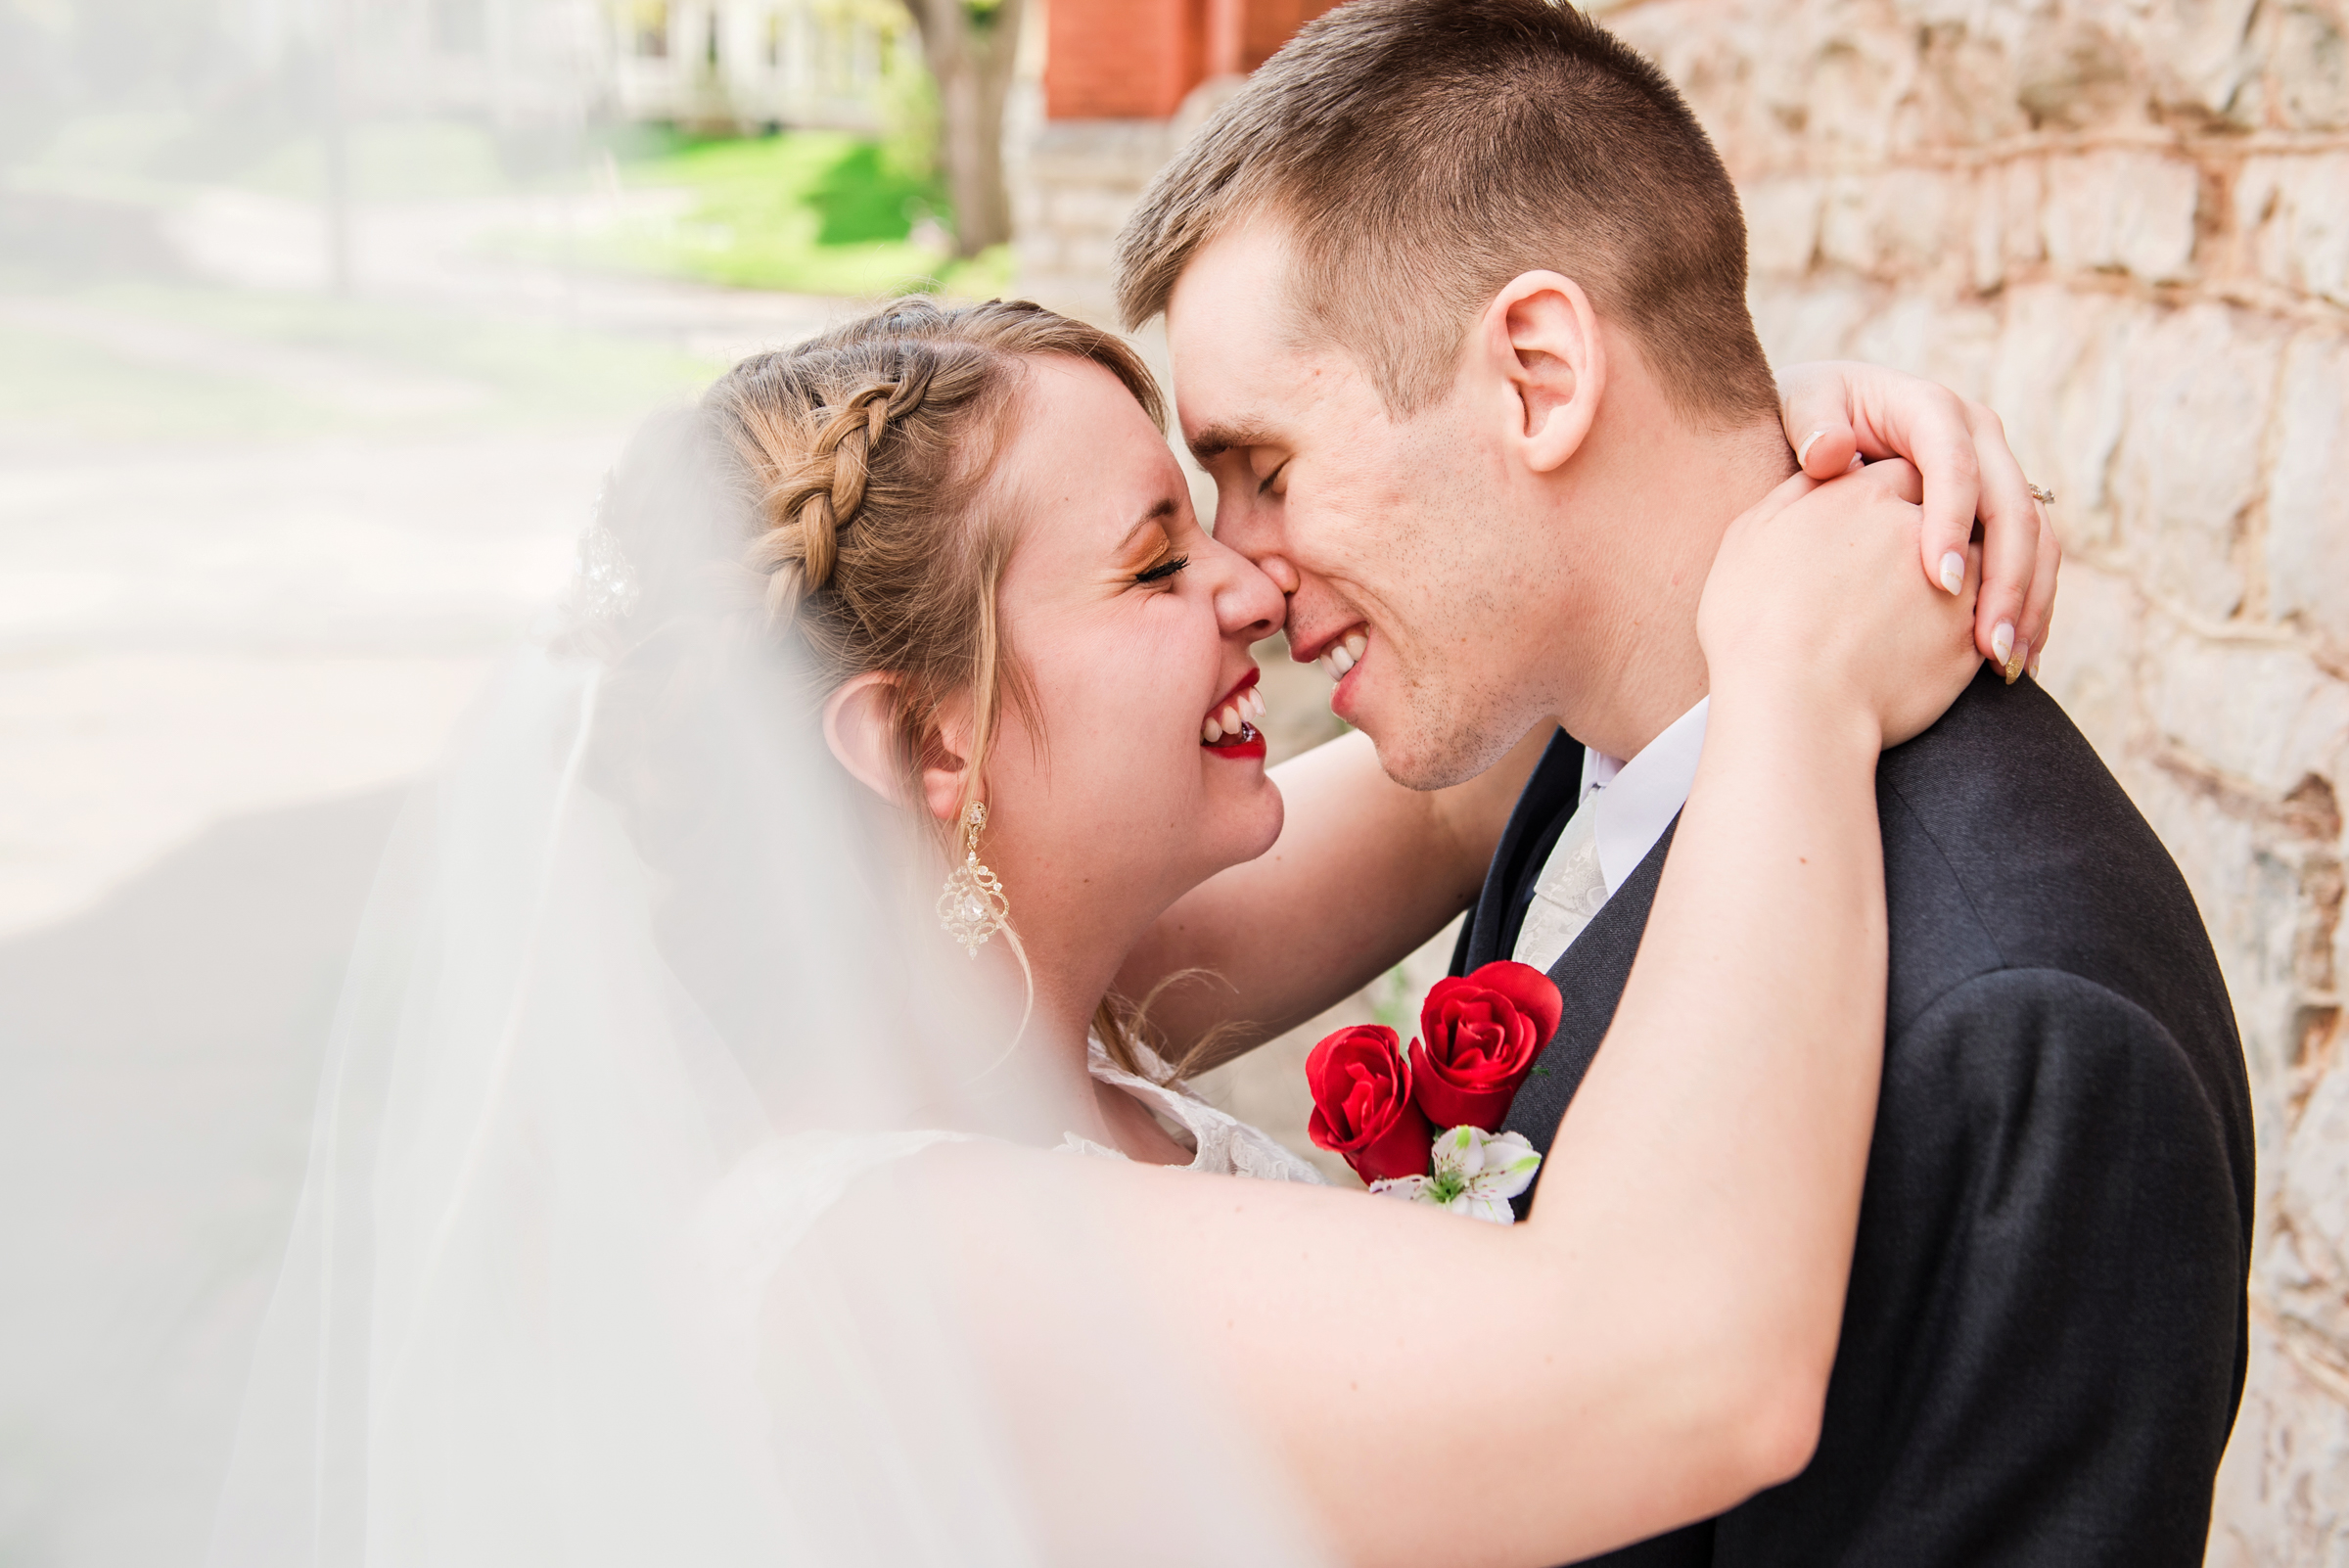 JILL_STUDIO_Wedding_JILL_STUDIO_Rochester_NY_Photographer_2-DSC_7163.jpg